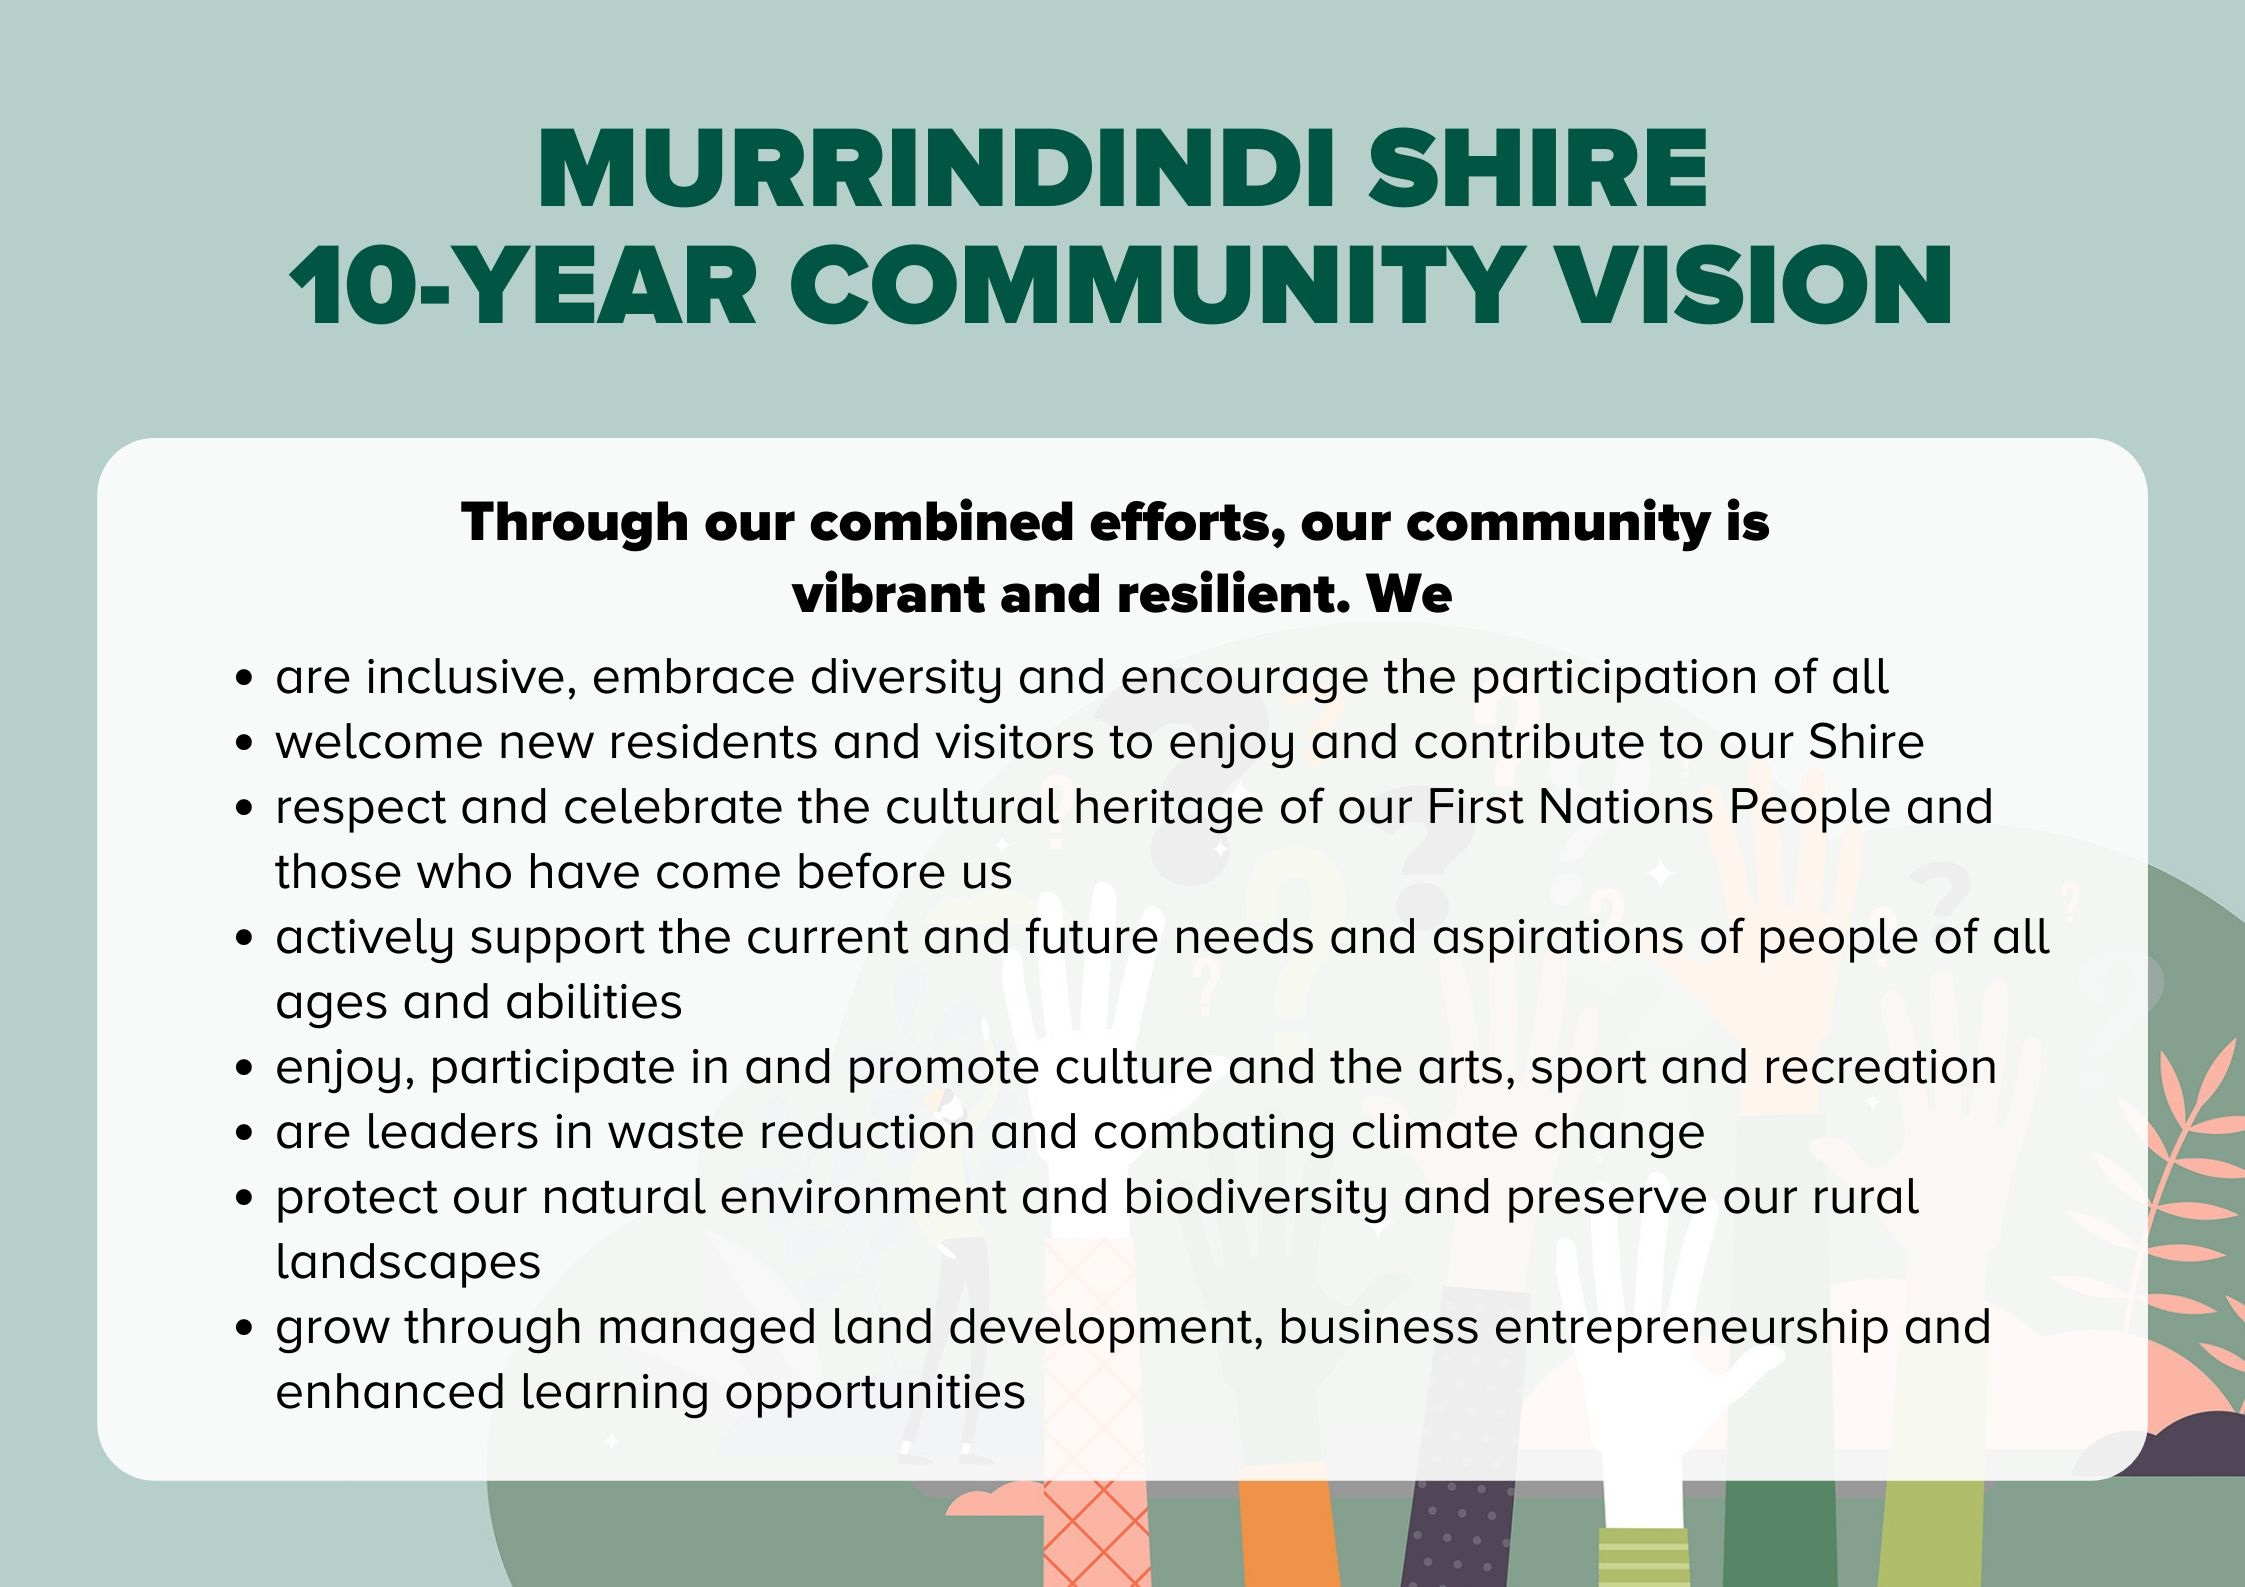 Adopted Community Vision